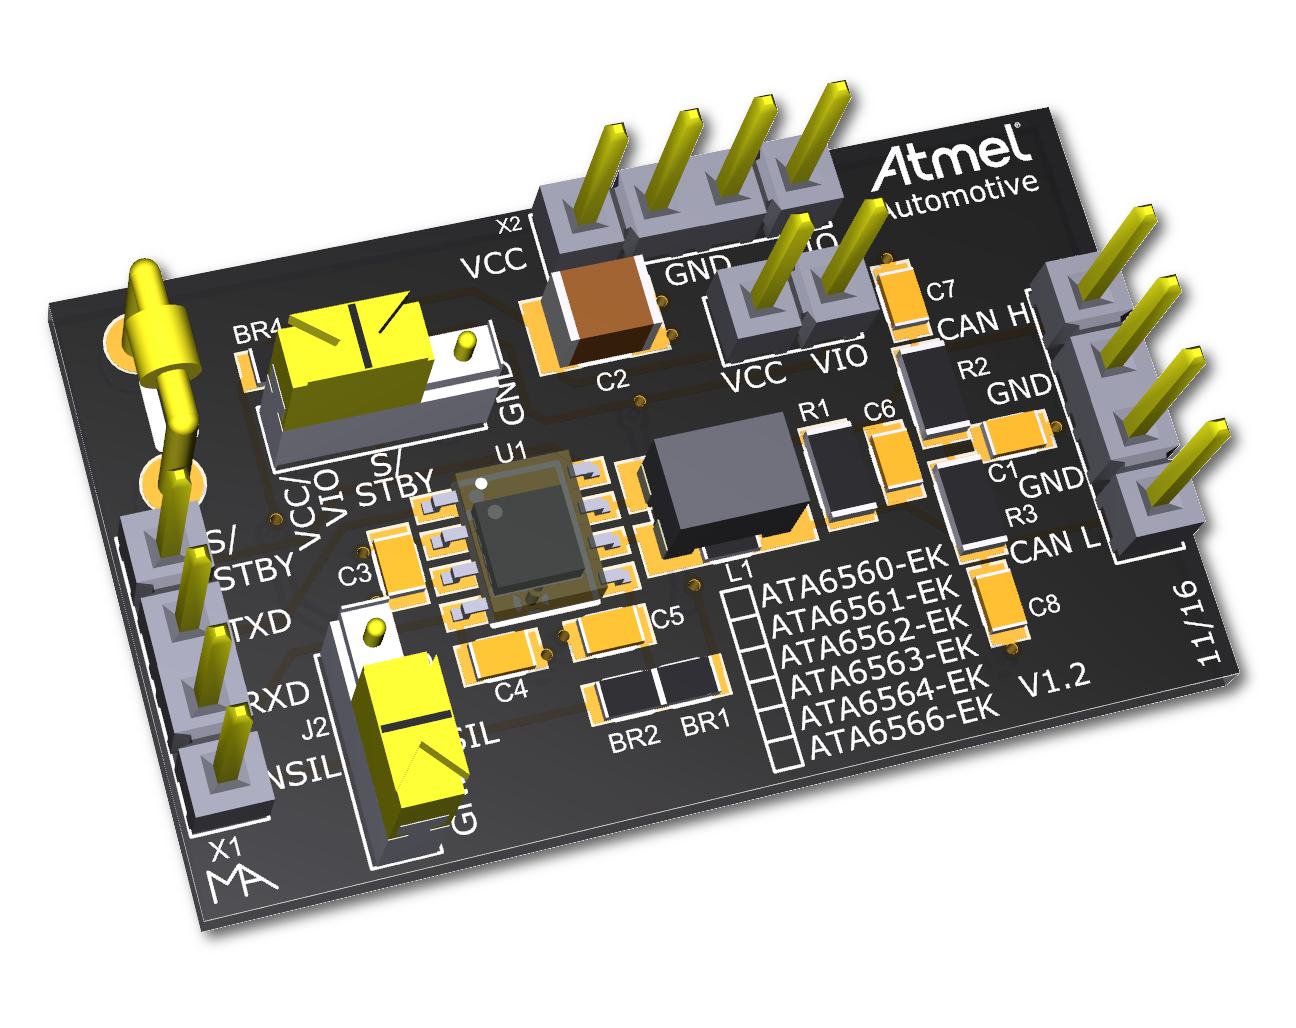 Mplabx Store Hall Effect Sensor Pic8051avr Usb Programmerdevelopment Boards The Development Board For Ata6560 Enables Users To Rapidly Carry Out Prototyping And Testing Of New Can Designs With High Speed